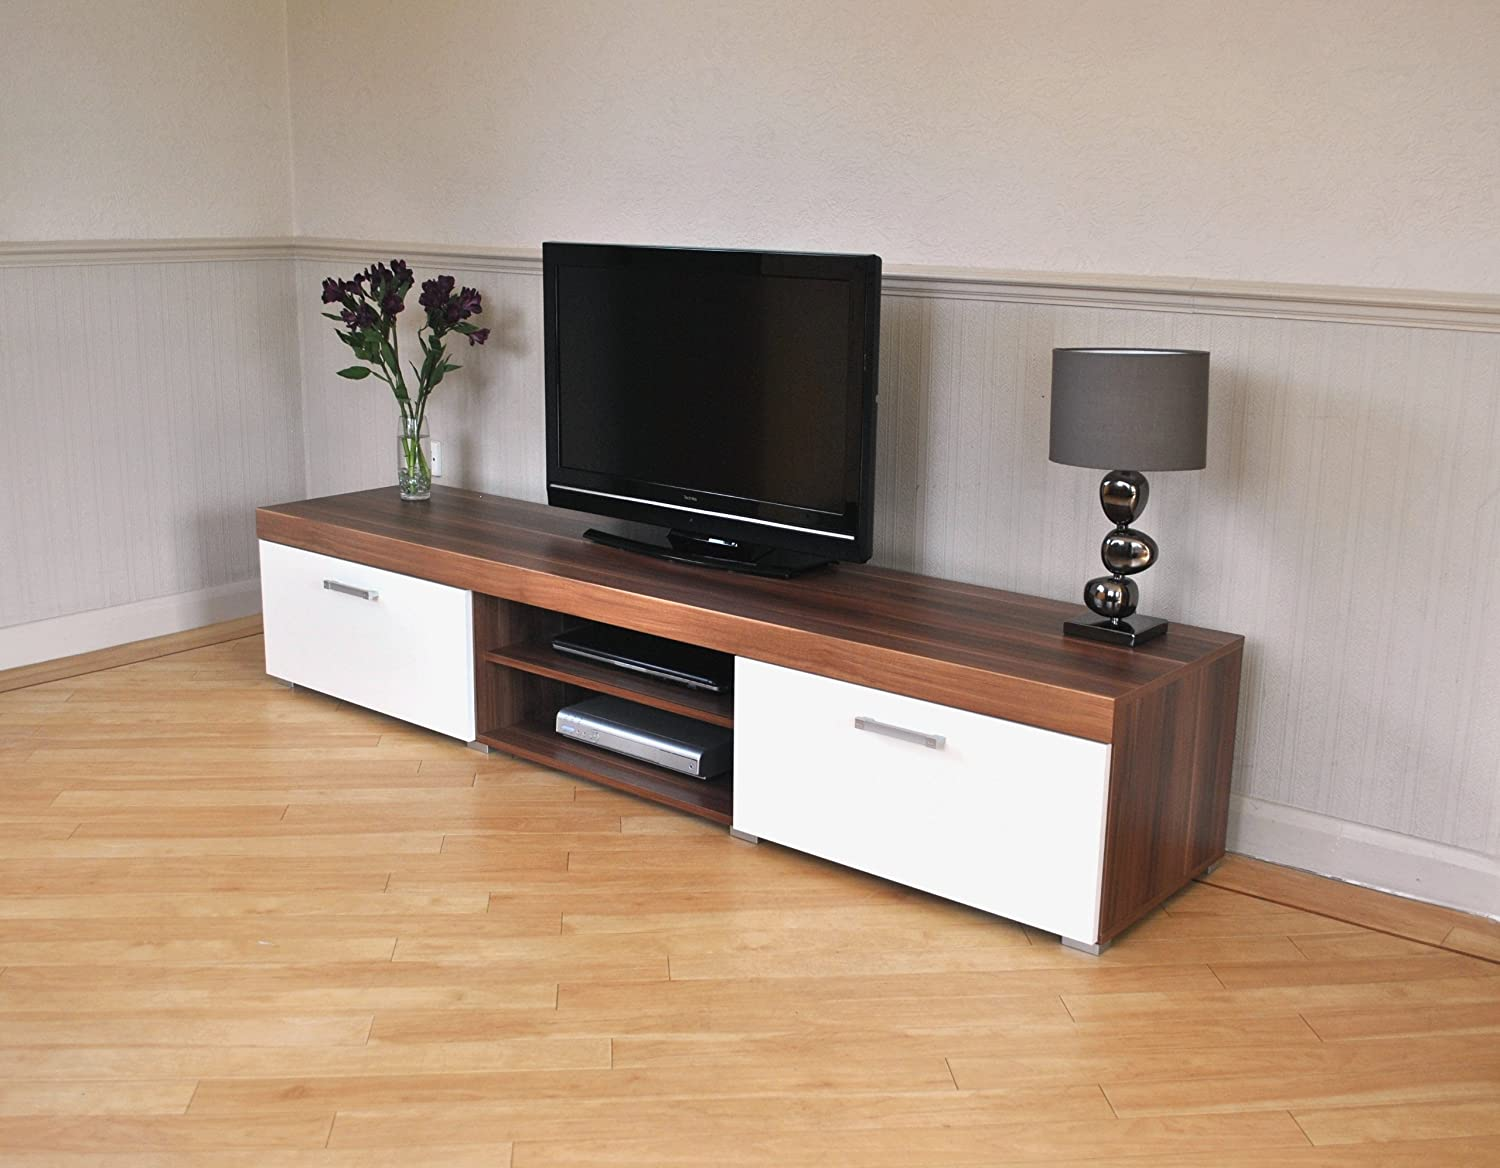 2 Metre White & Walnut Sydney 2 Door TV Cabinet Extra Large Unit ...